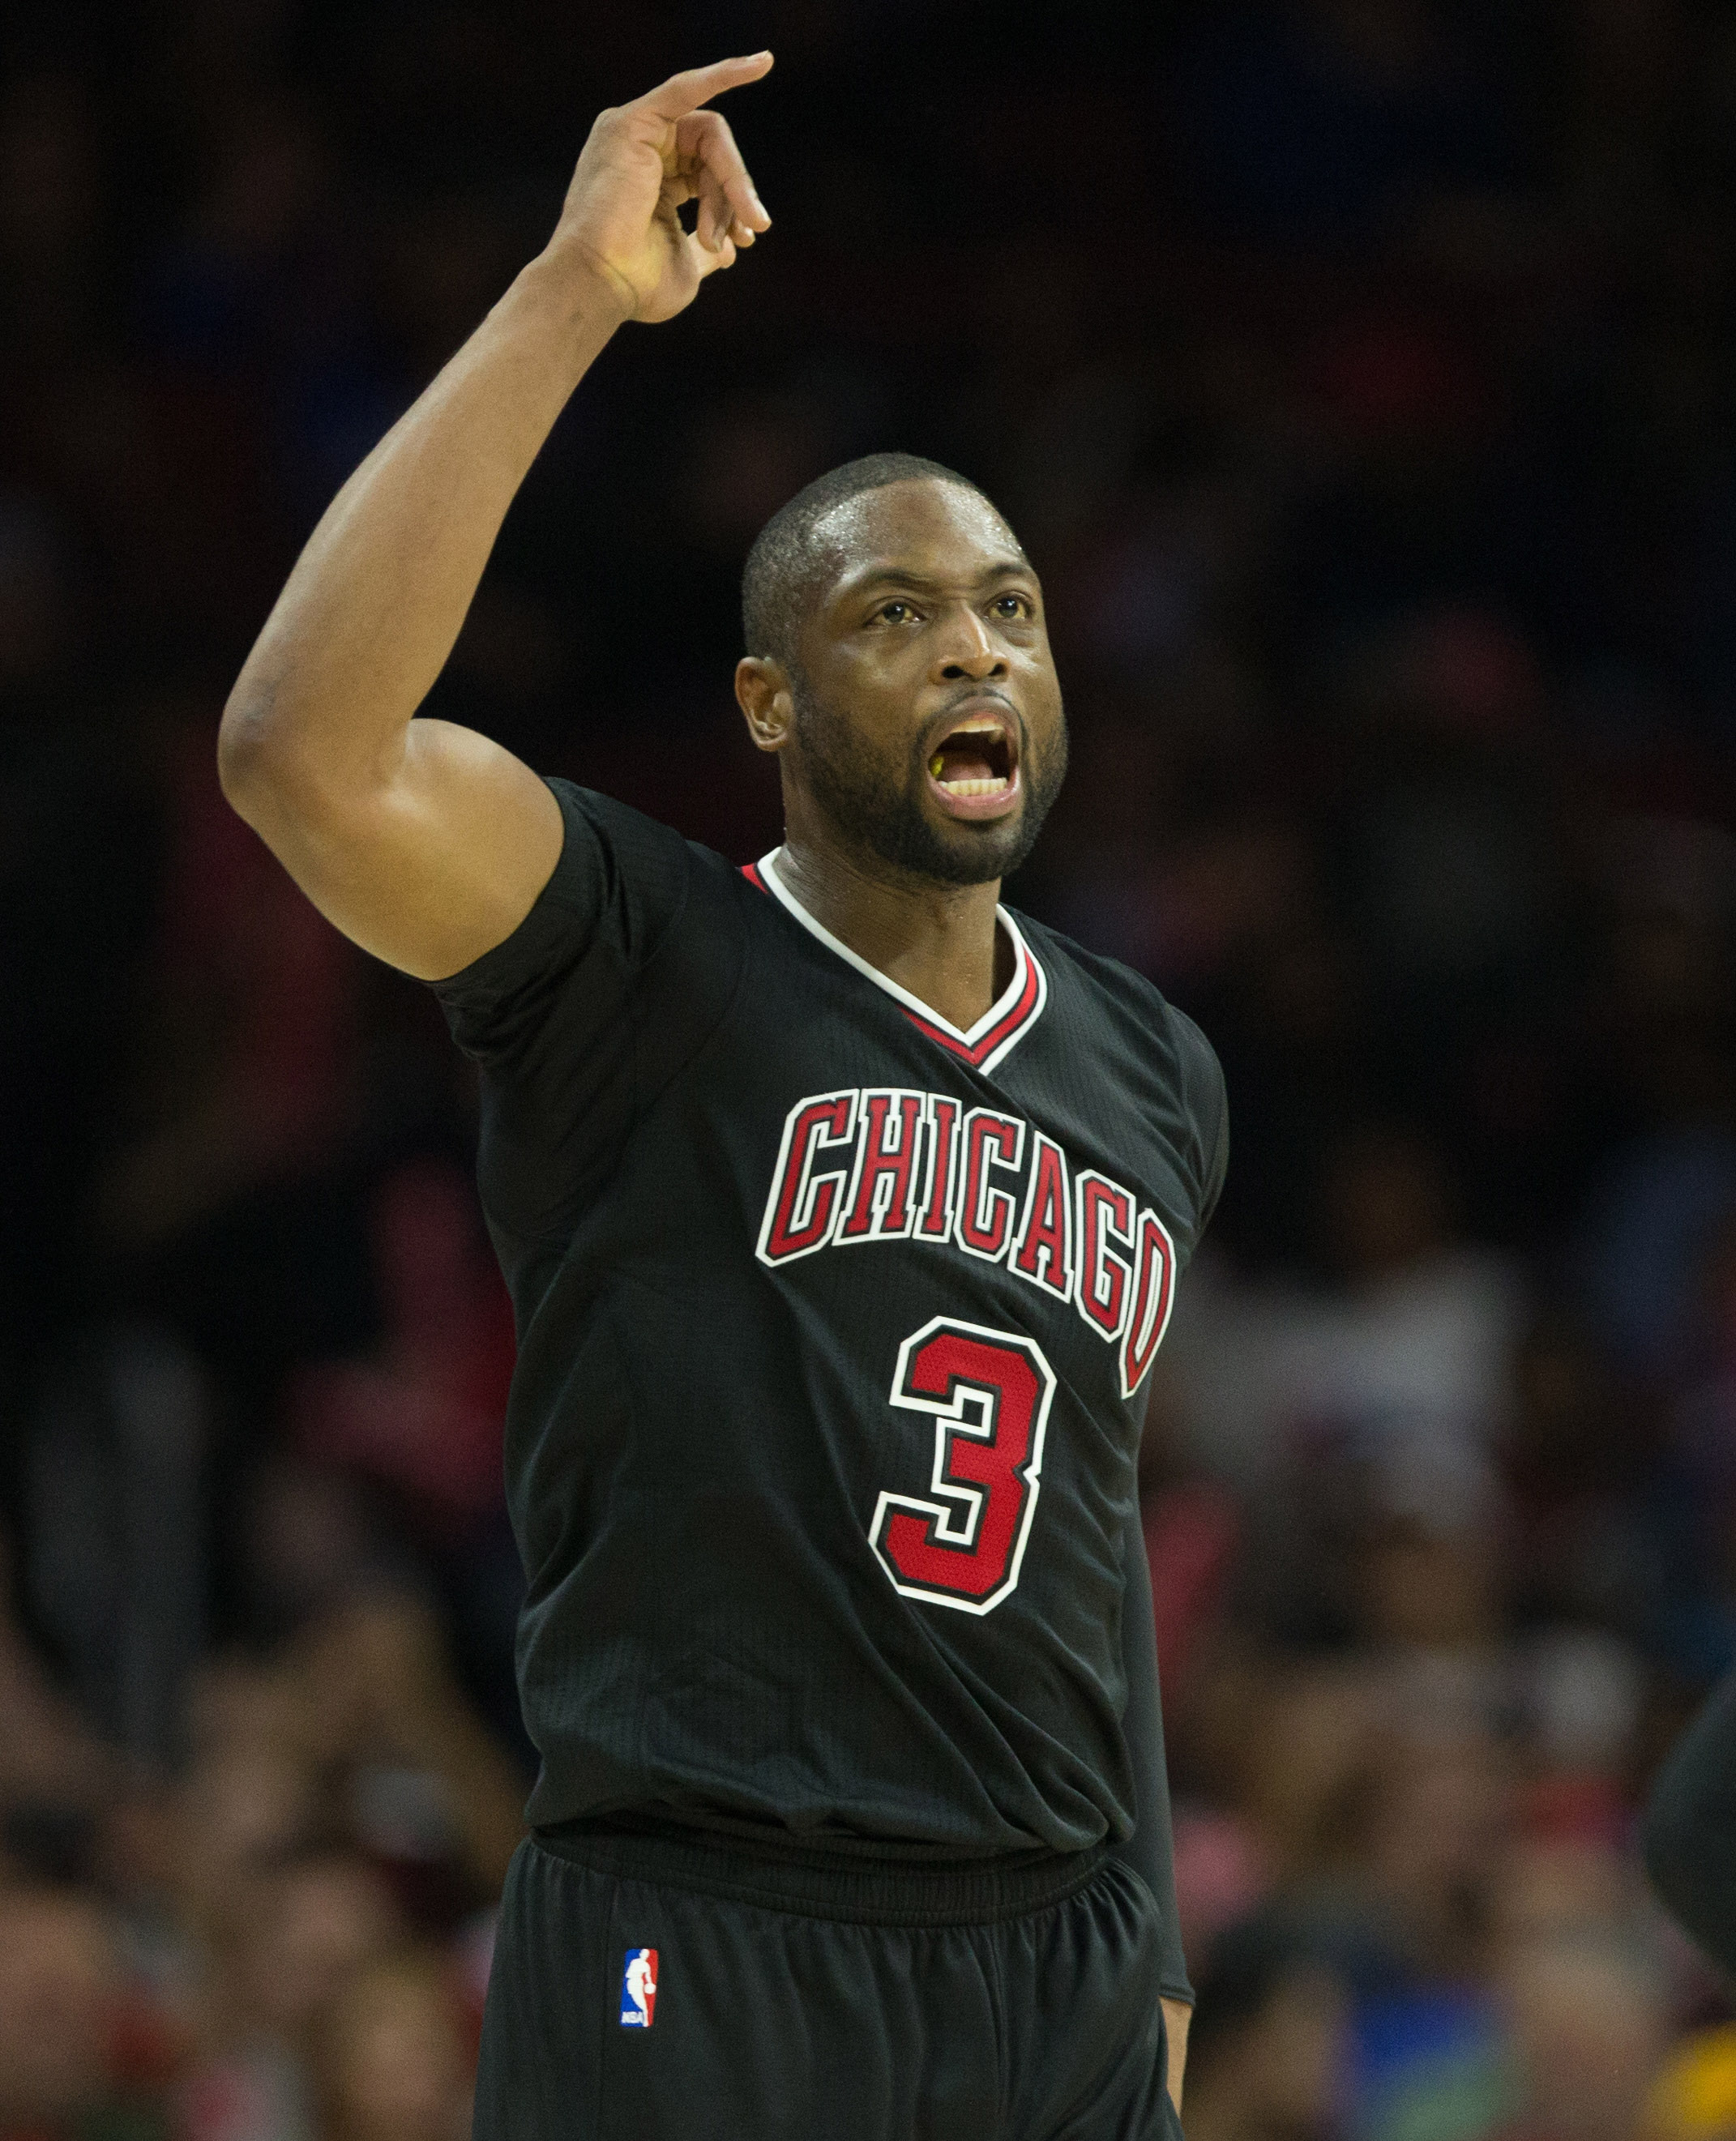 Dwyane Wade is not happy with the NBA's two-minute reports. (Bill Streicher/USA TODAY Sports)